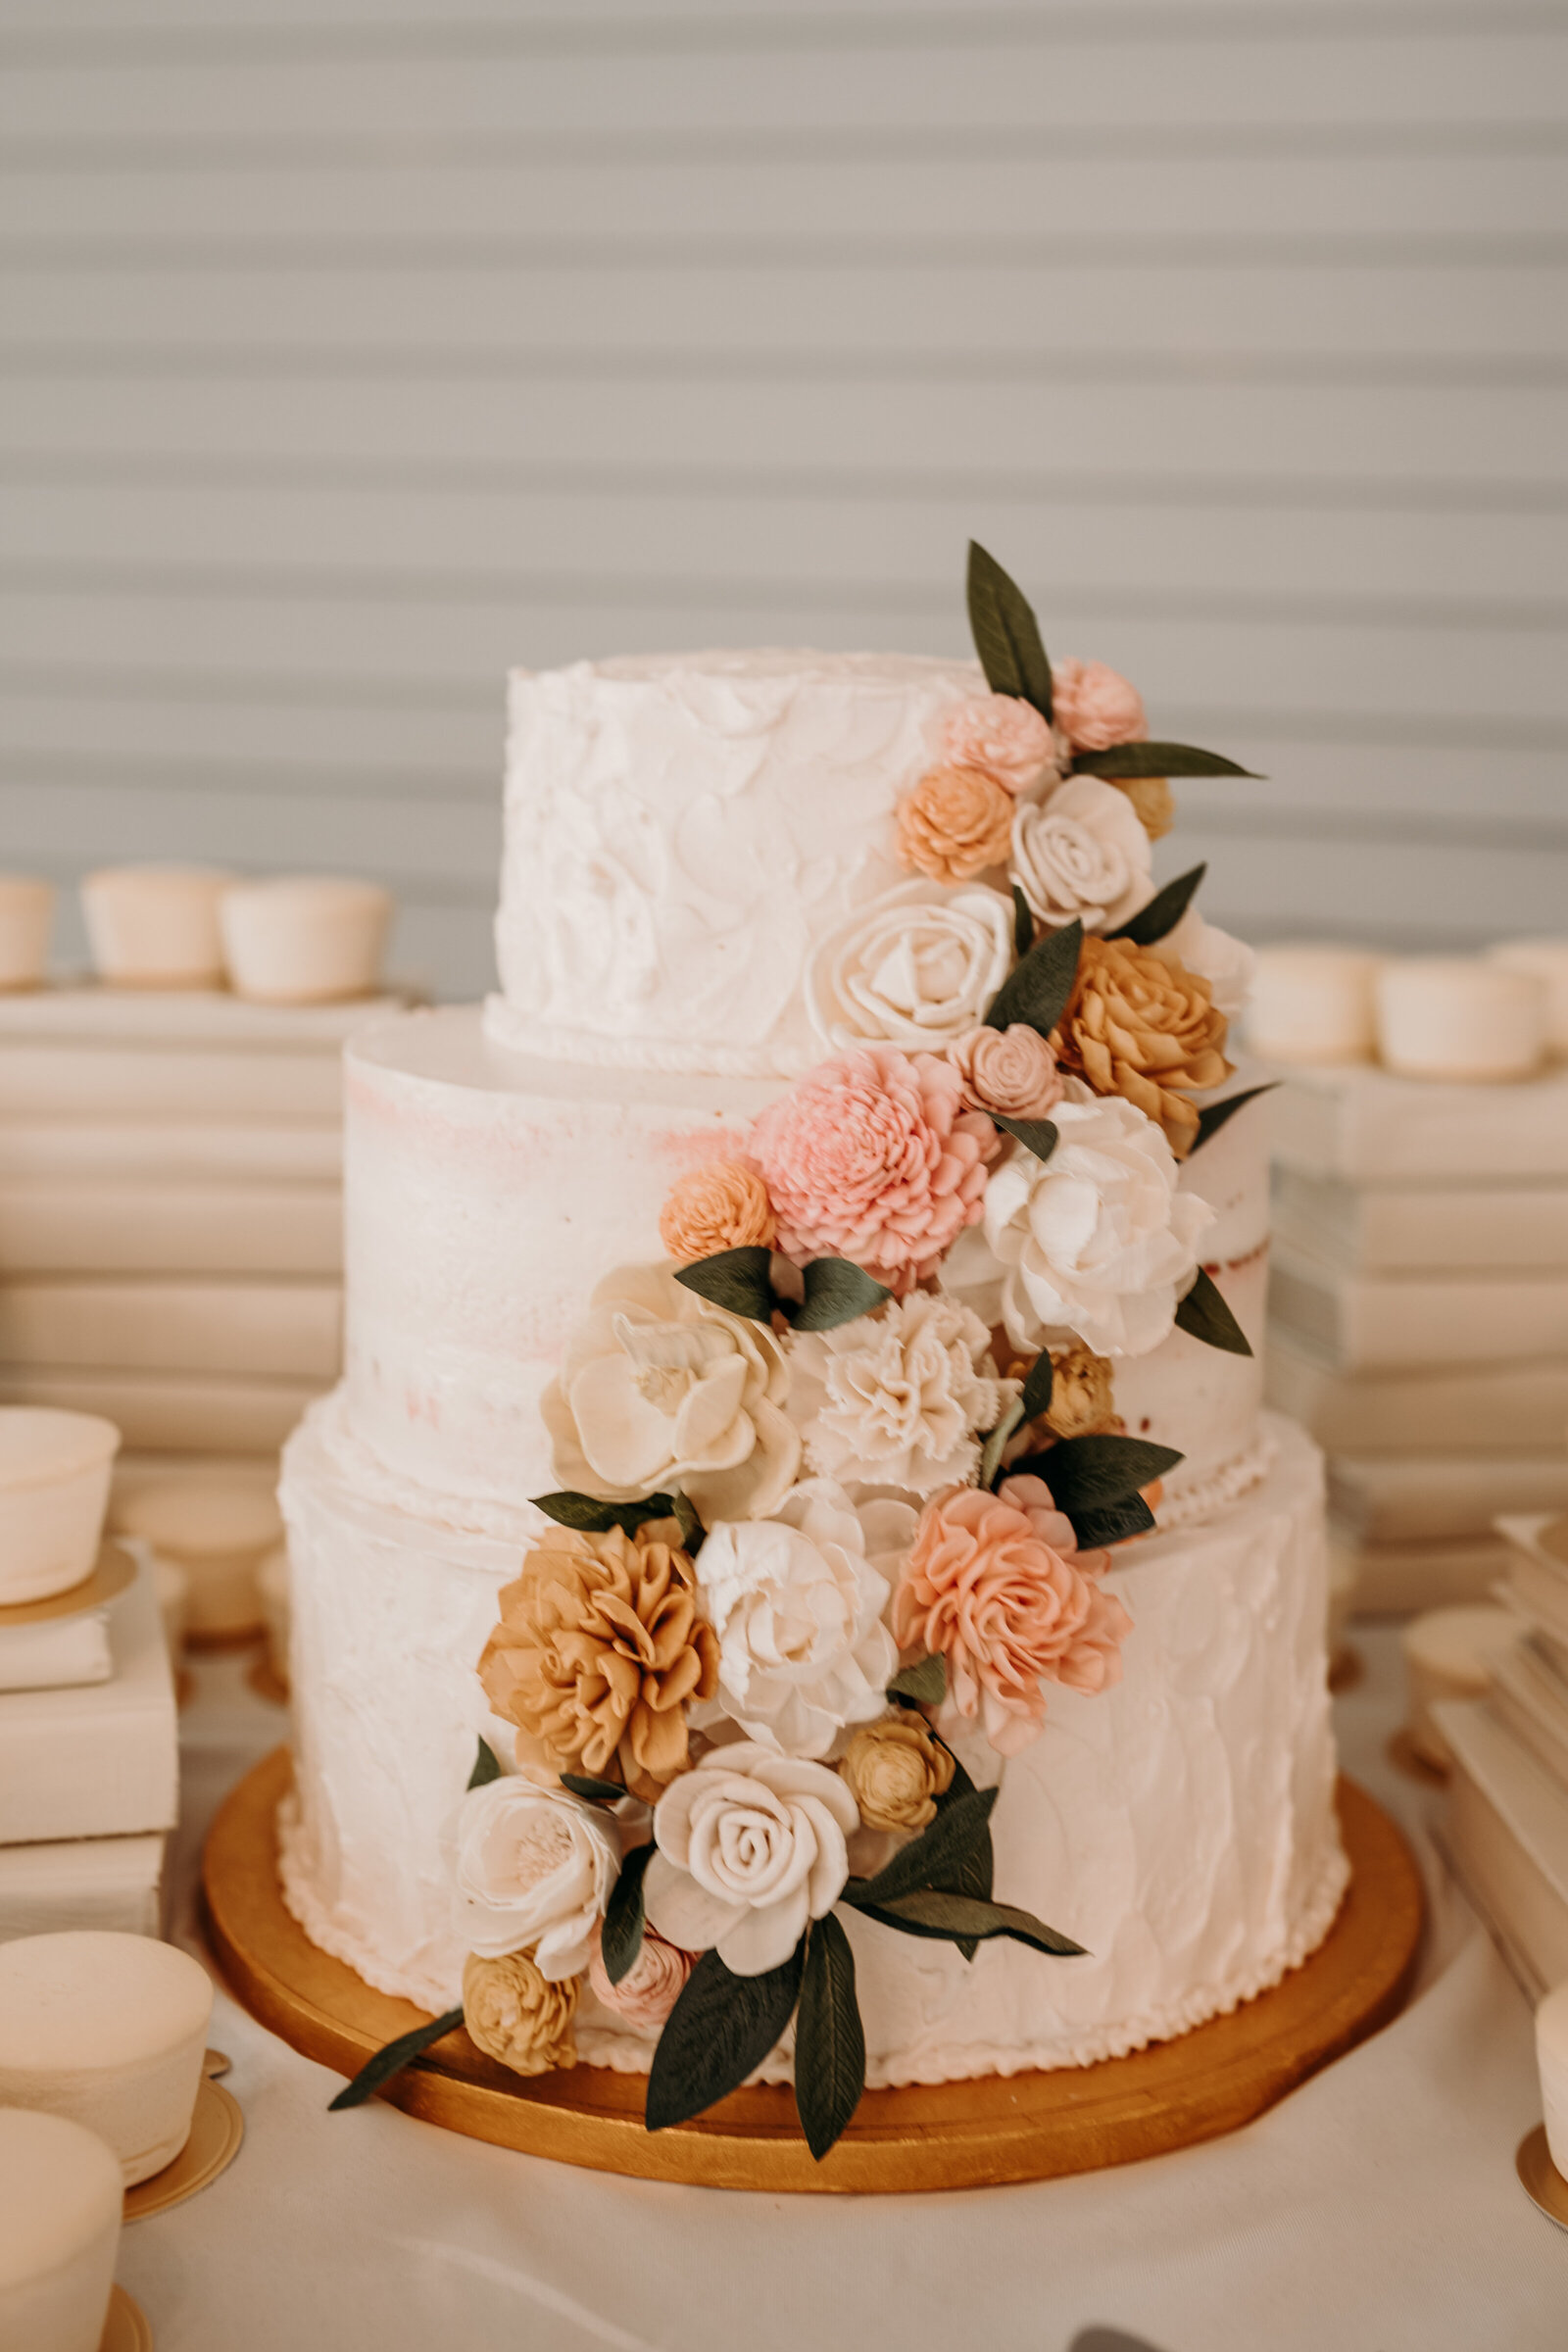 J.Michelle Photography photographs a floral wedding cake at Athens, Ga Wedding